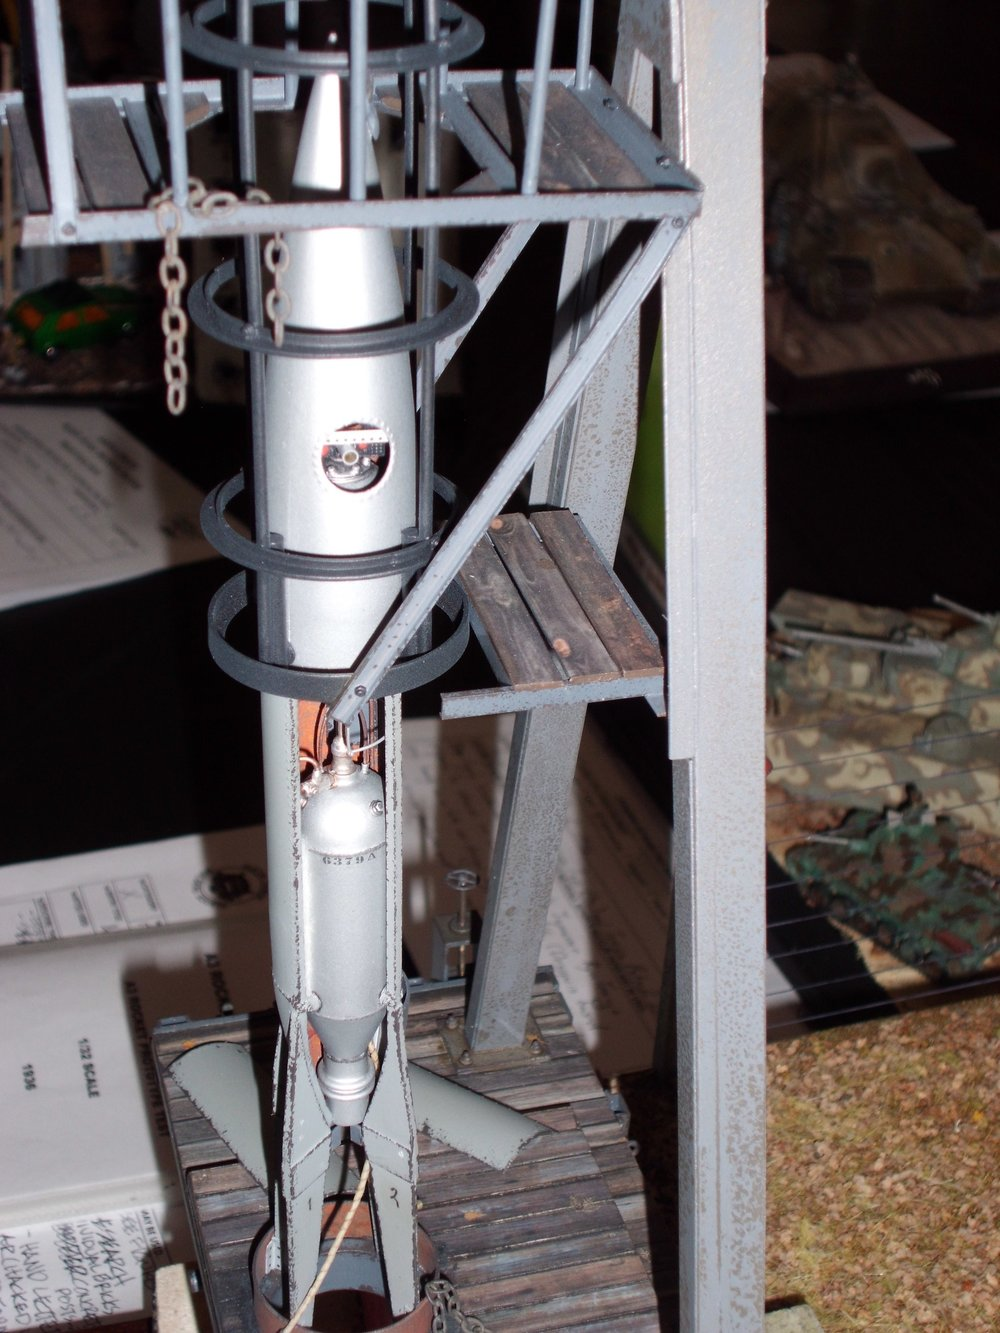 Scratch built A-3 Mobile Test Stand by David Carlton